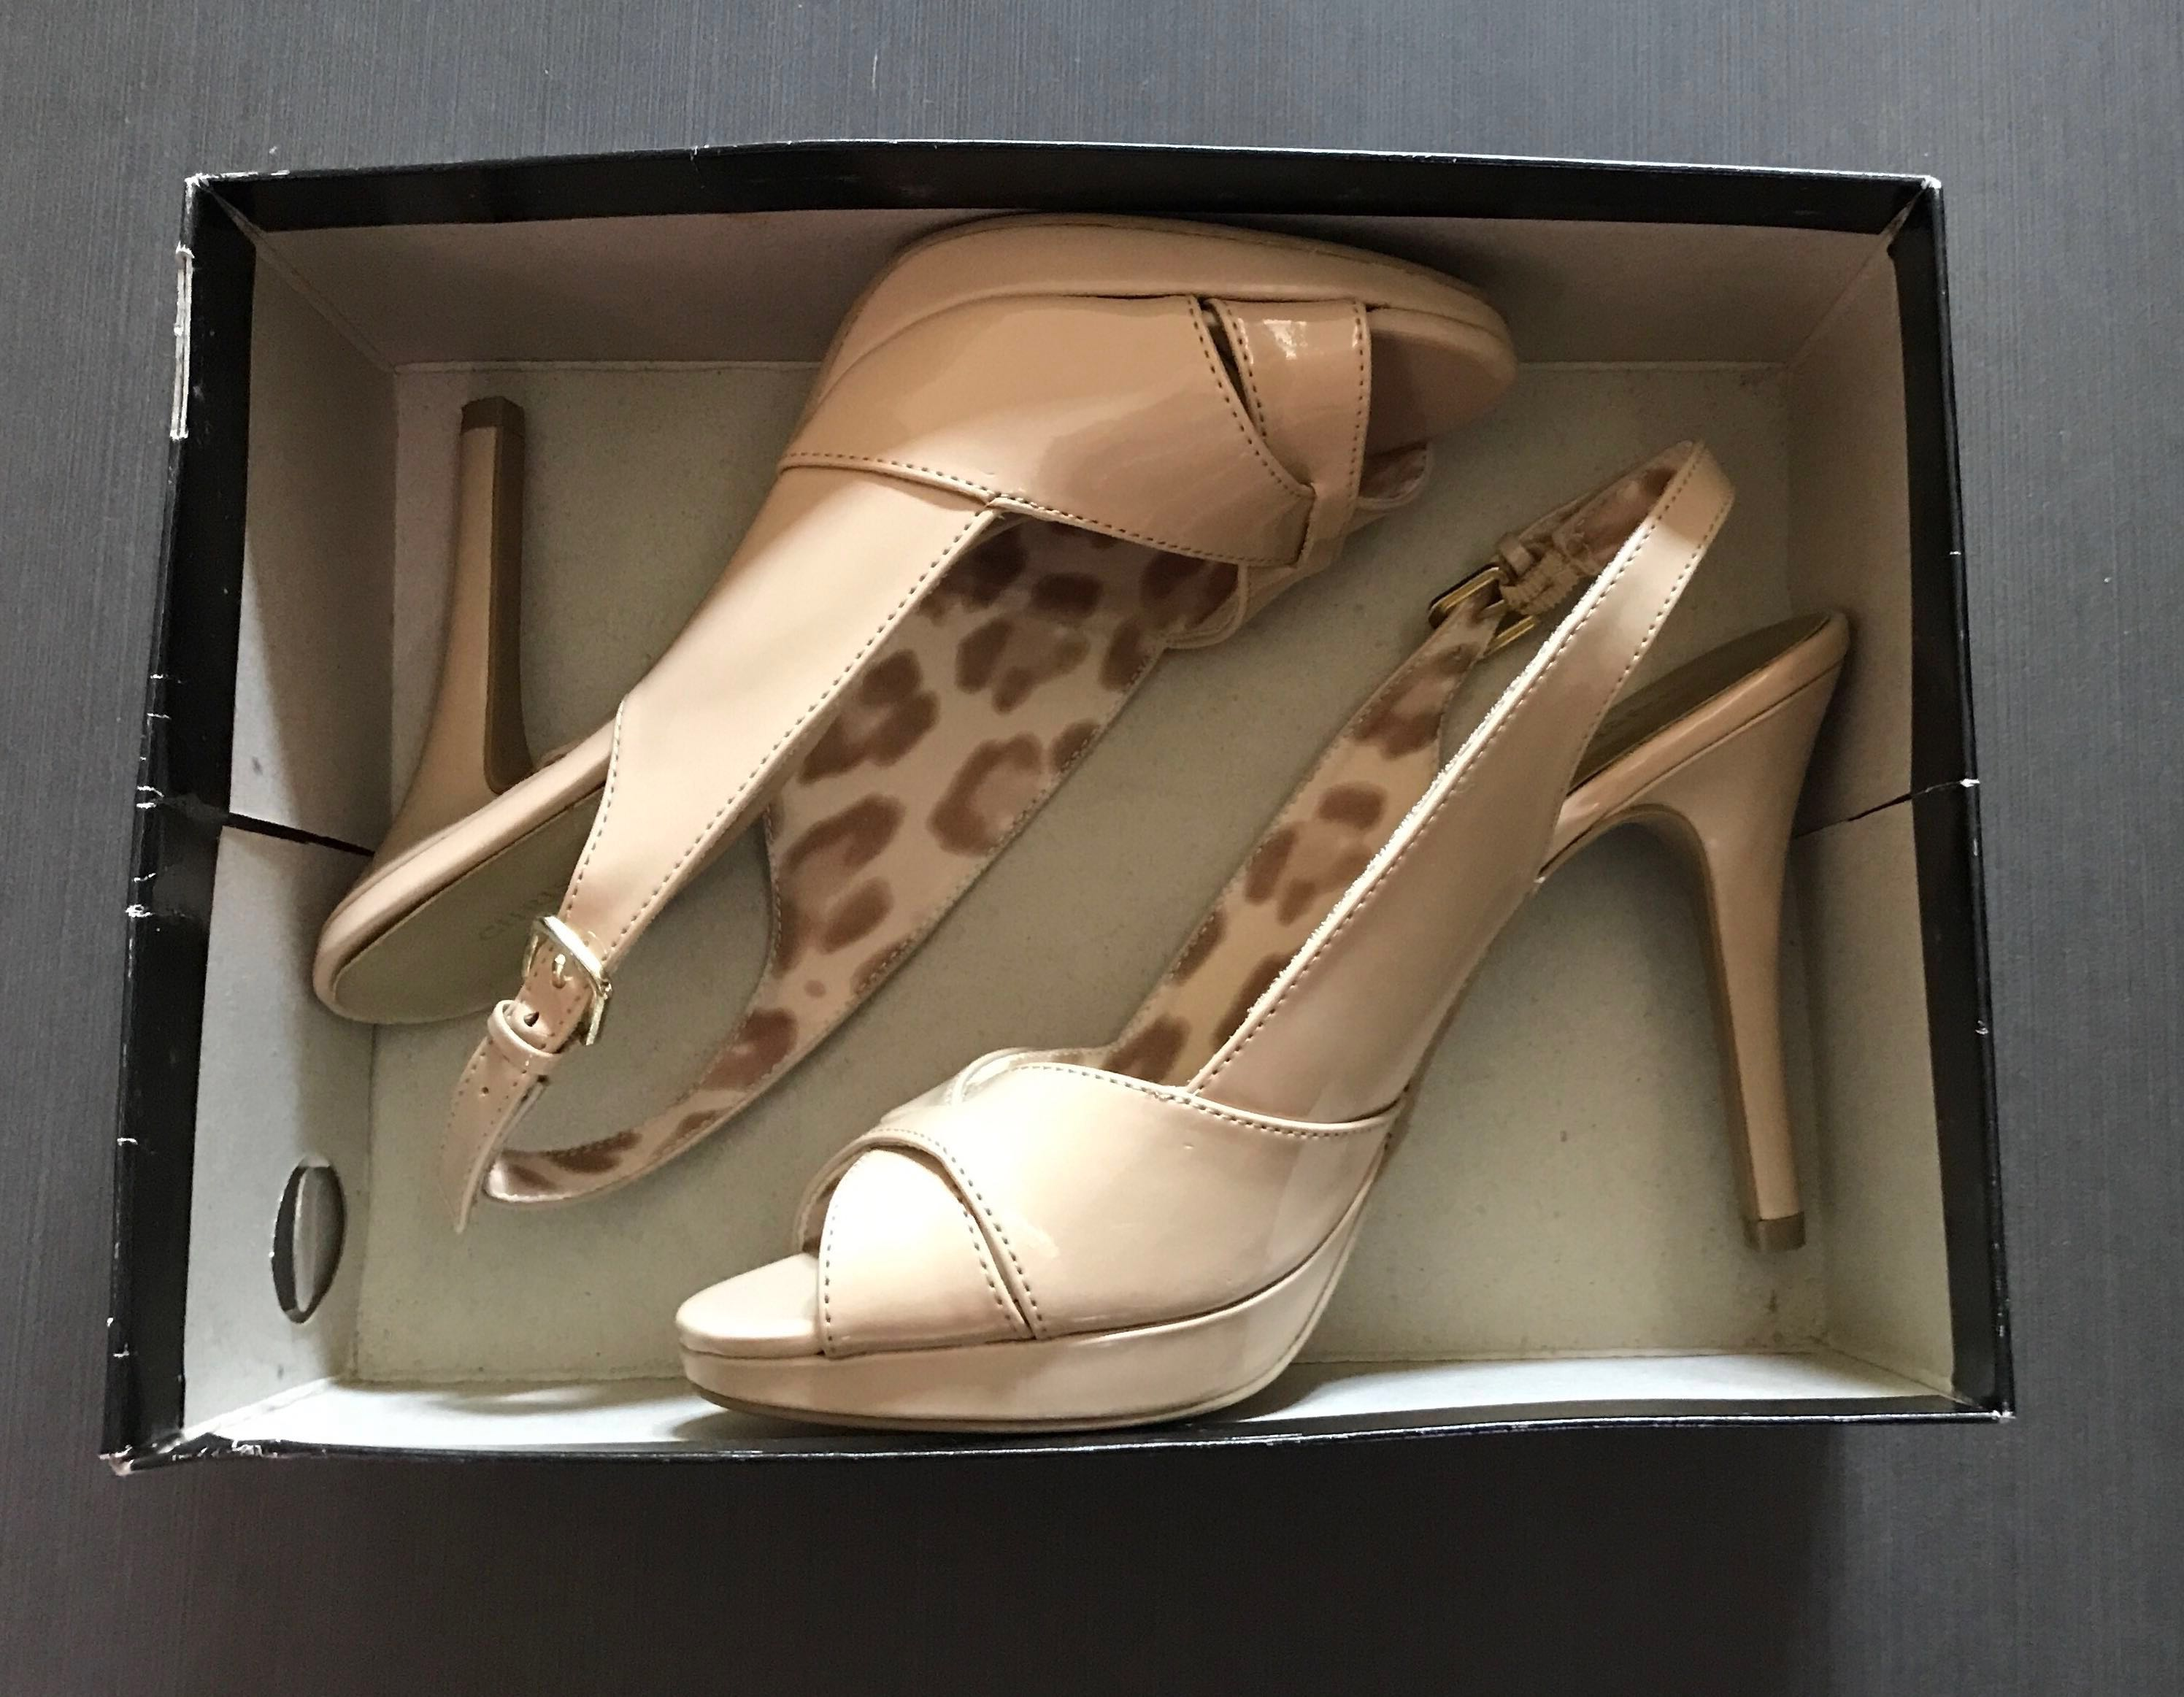 390afd75e8 Christian Siriano Payless classy nude patent peep toe heels, Women's  Fashion, Shoes on Carousell